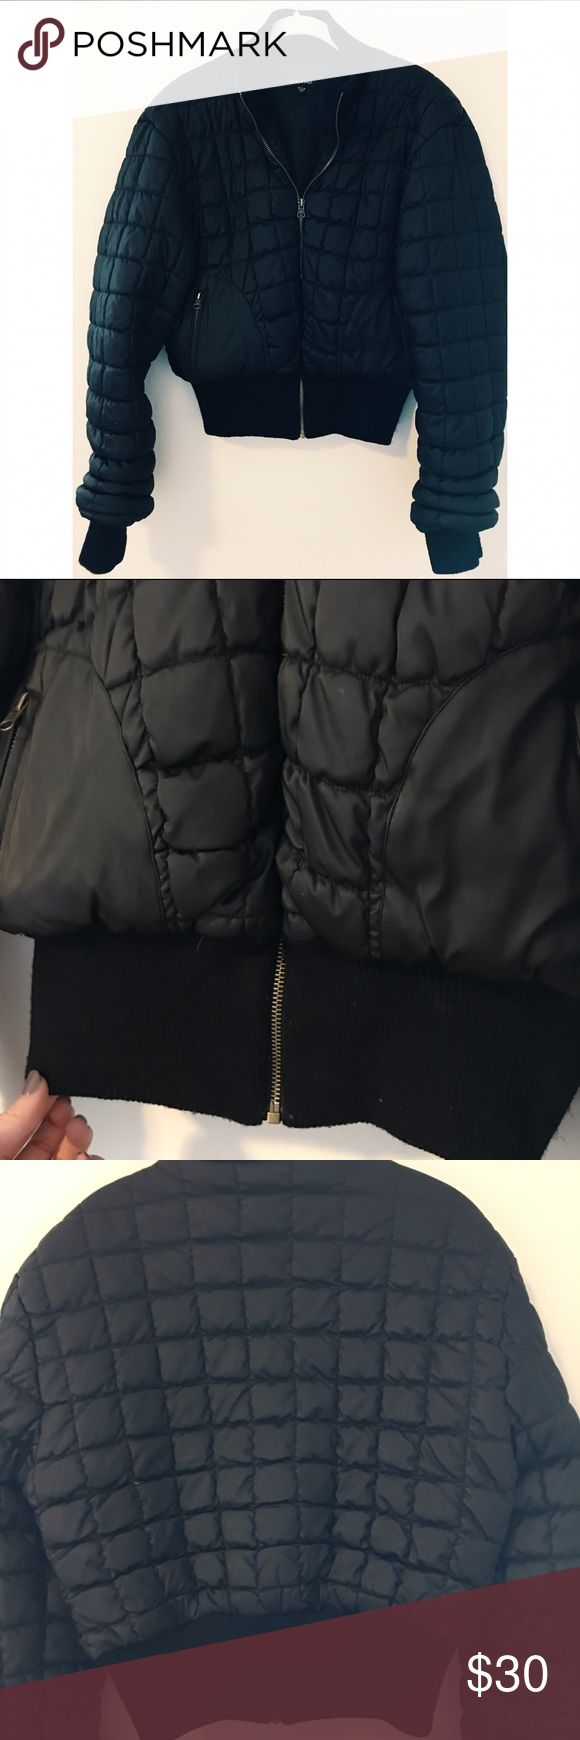 Bebe Women's Puffer Coat Size Medium Great condition, almost no sign of wear. Let me know if you have any questions! bebe Jackets & Coats Puffers